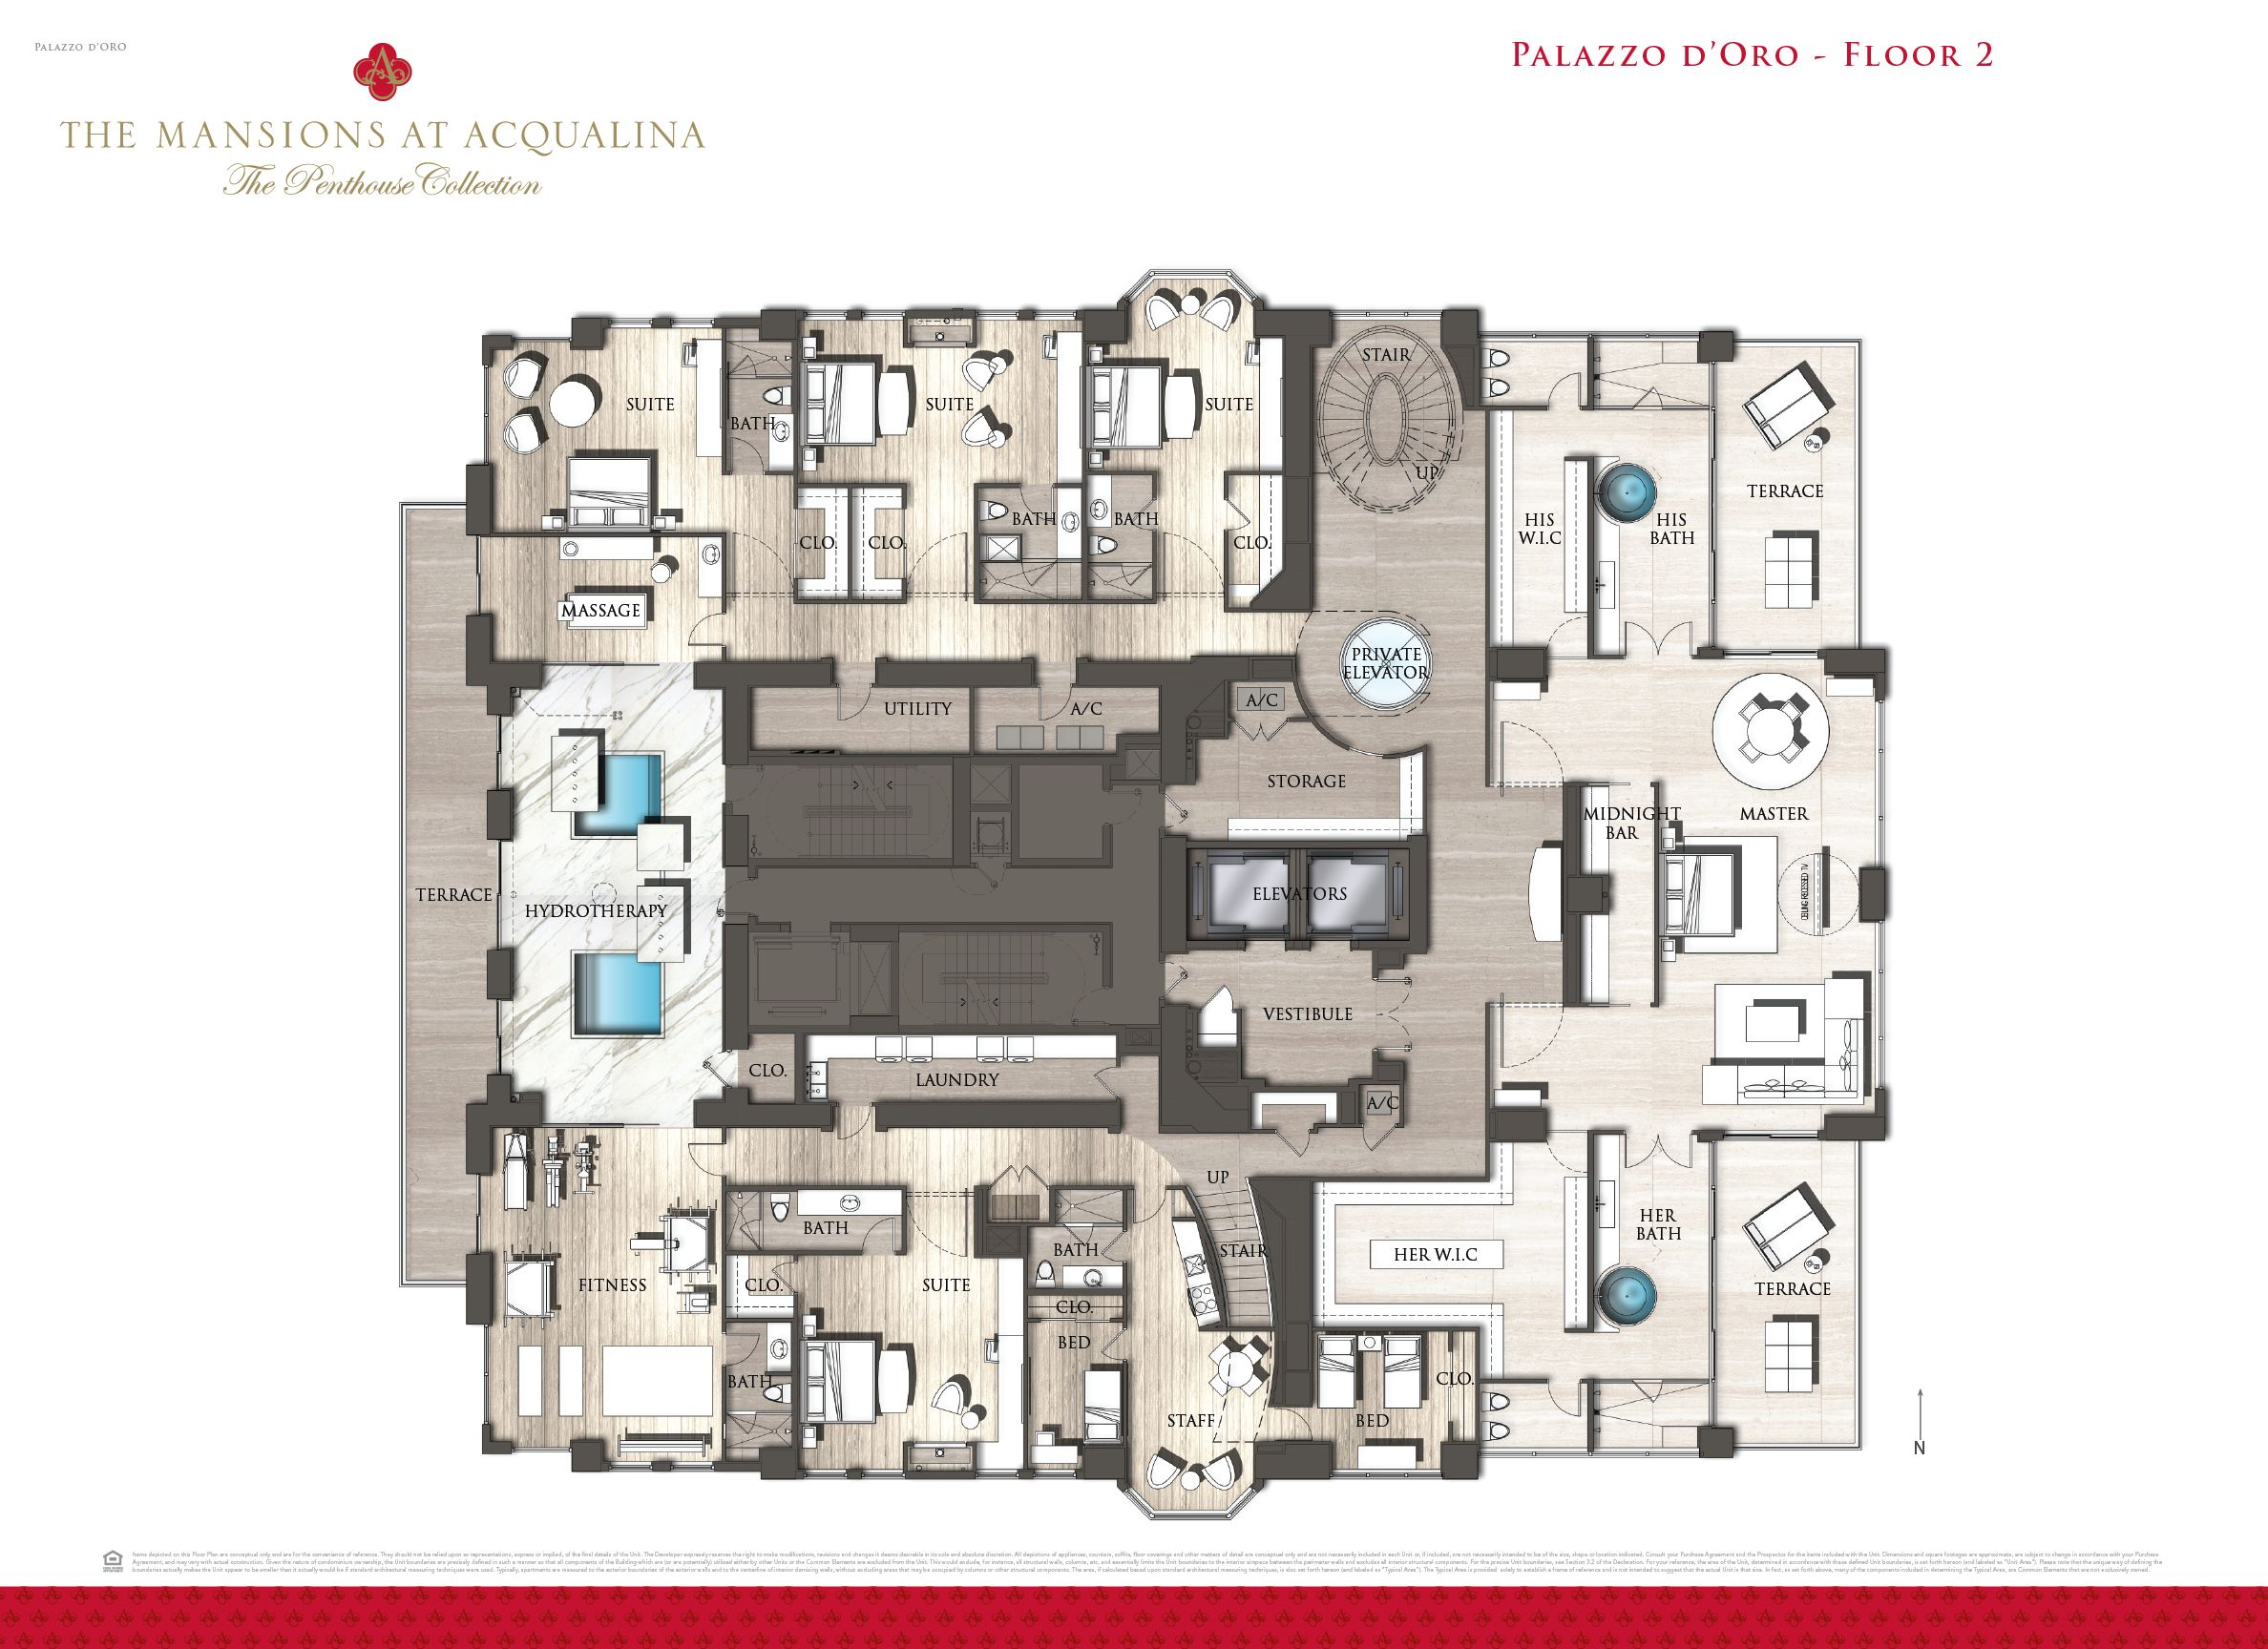 Mansions at acqualina penthouse hits the market for 55m penthouses mansion and apartments - Lay outs penthouse ...